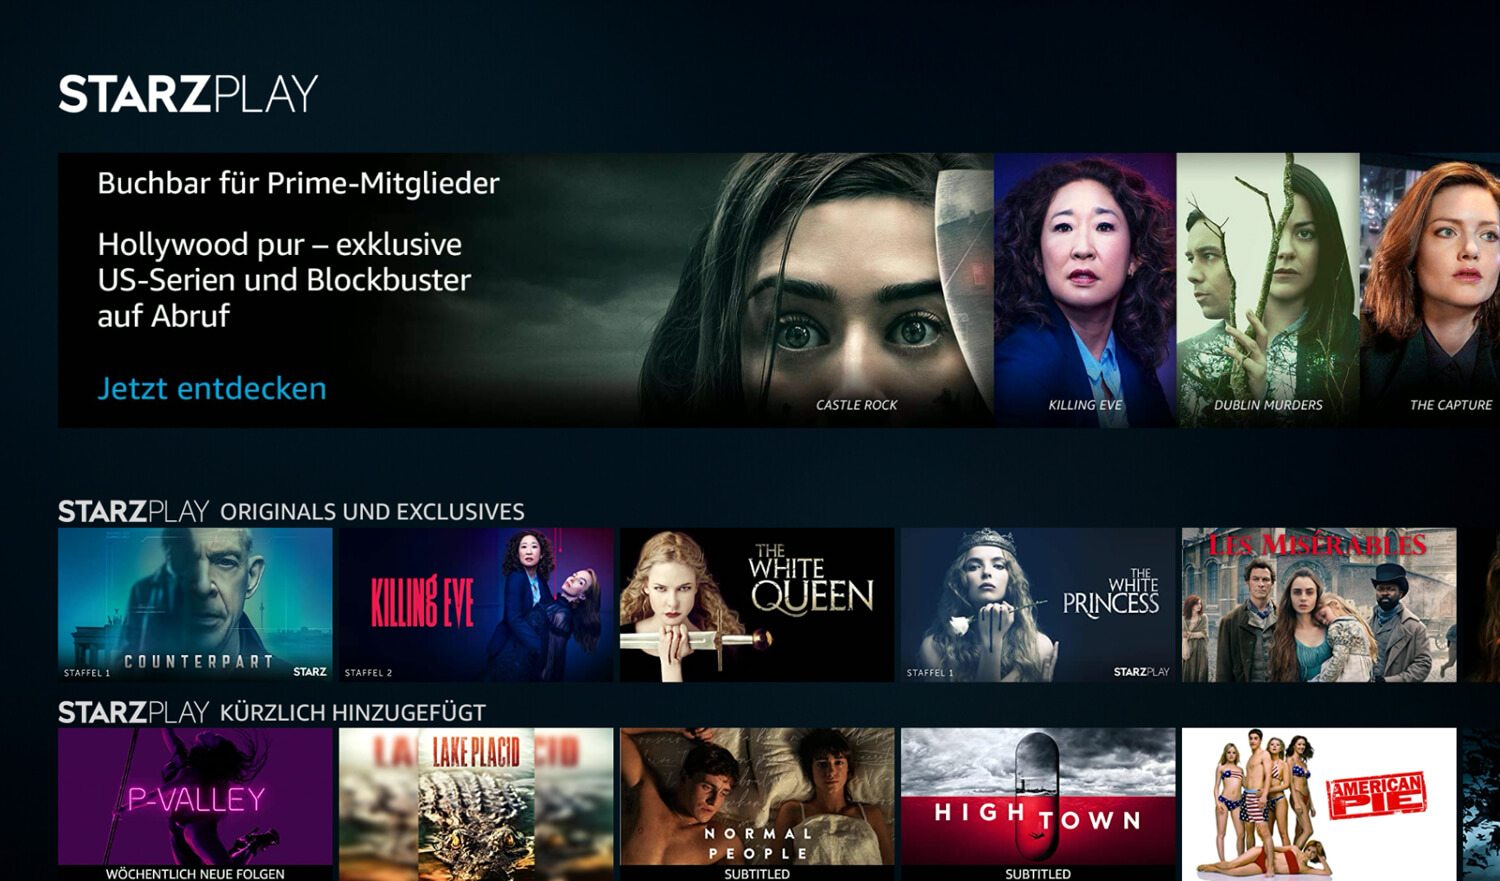 STARZPLAY bei Prime Video Channels